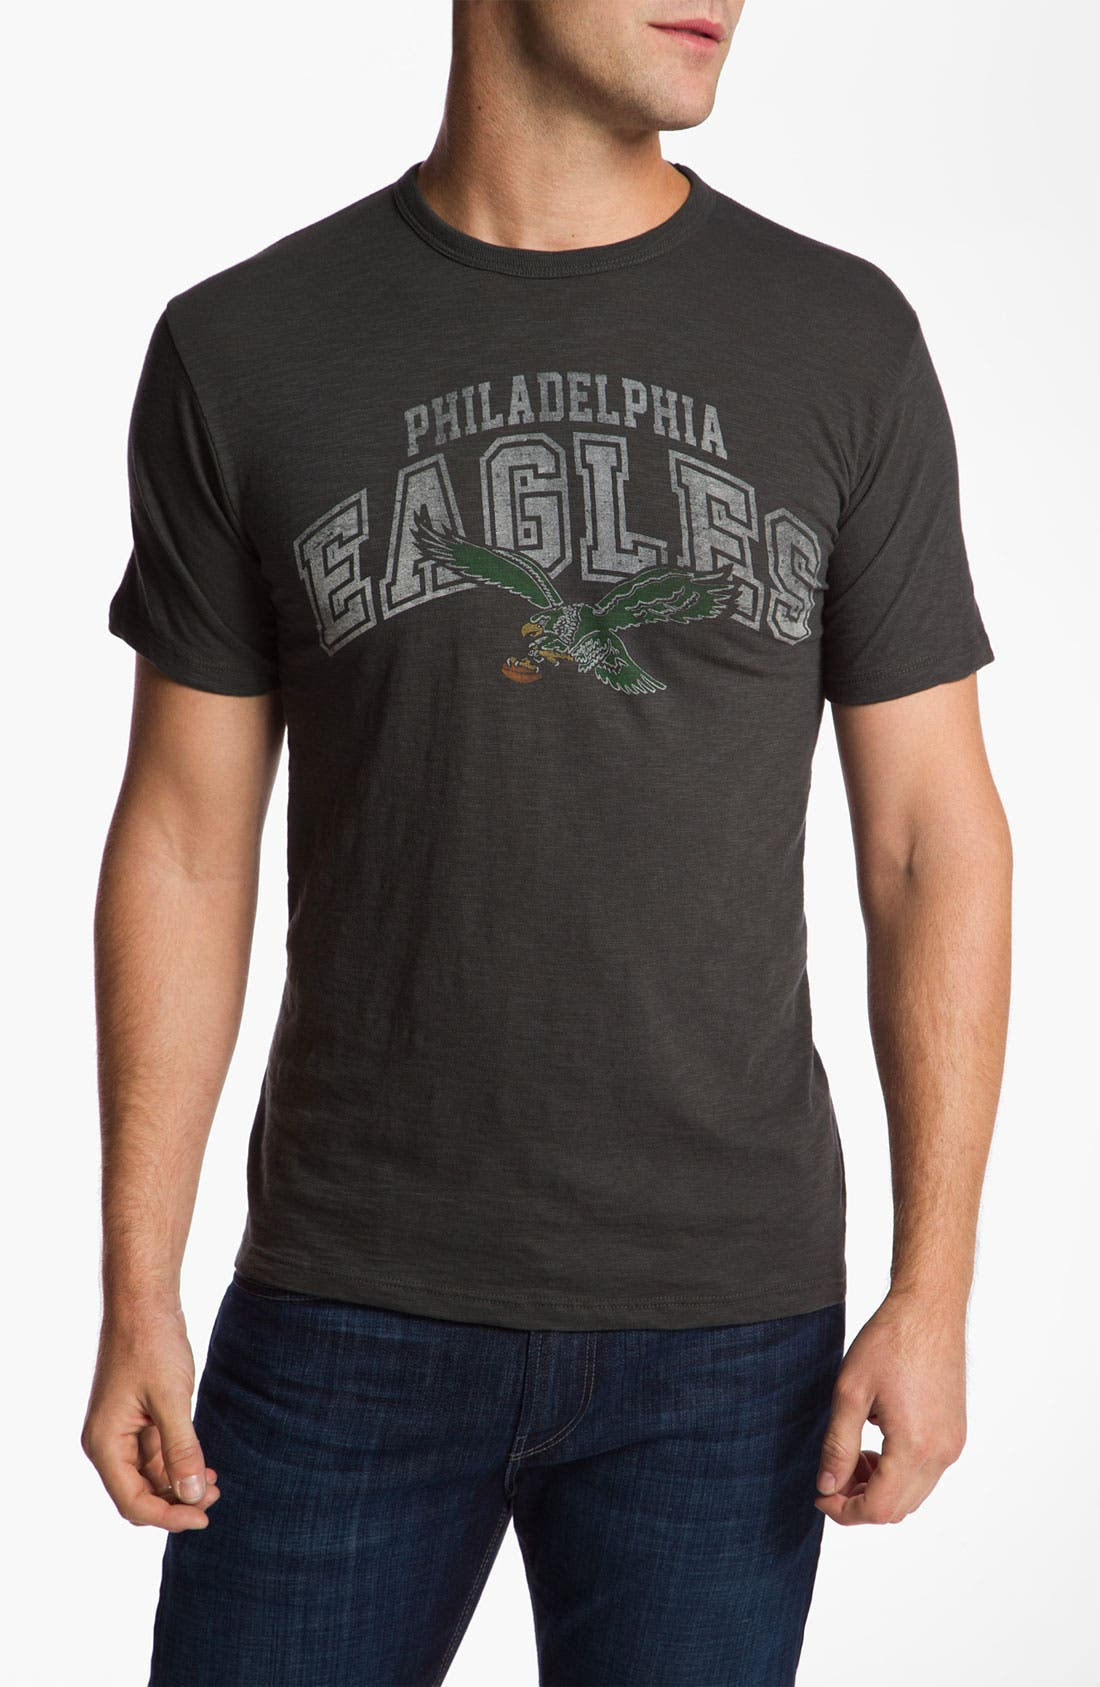 Main Image - Banner 47 'Philadelphia Eagles' T-Shirt